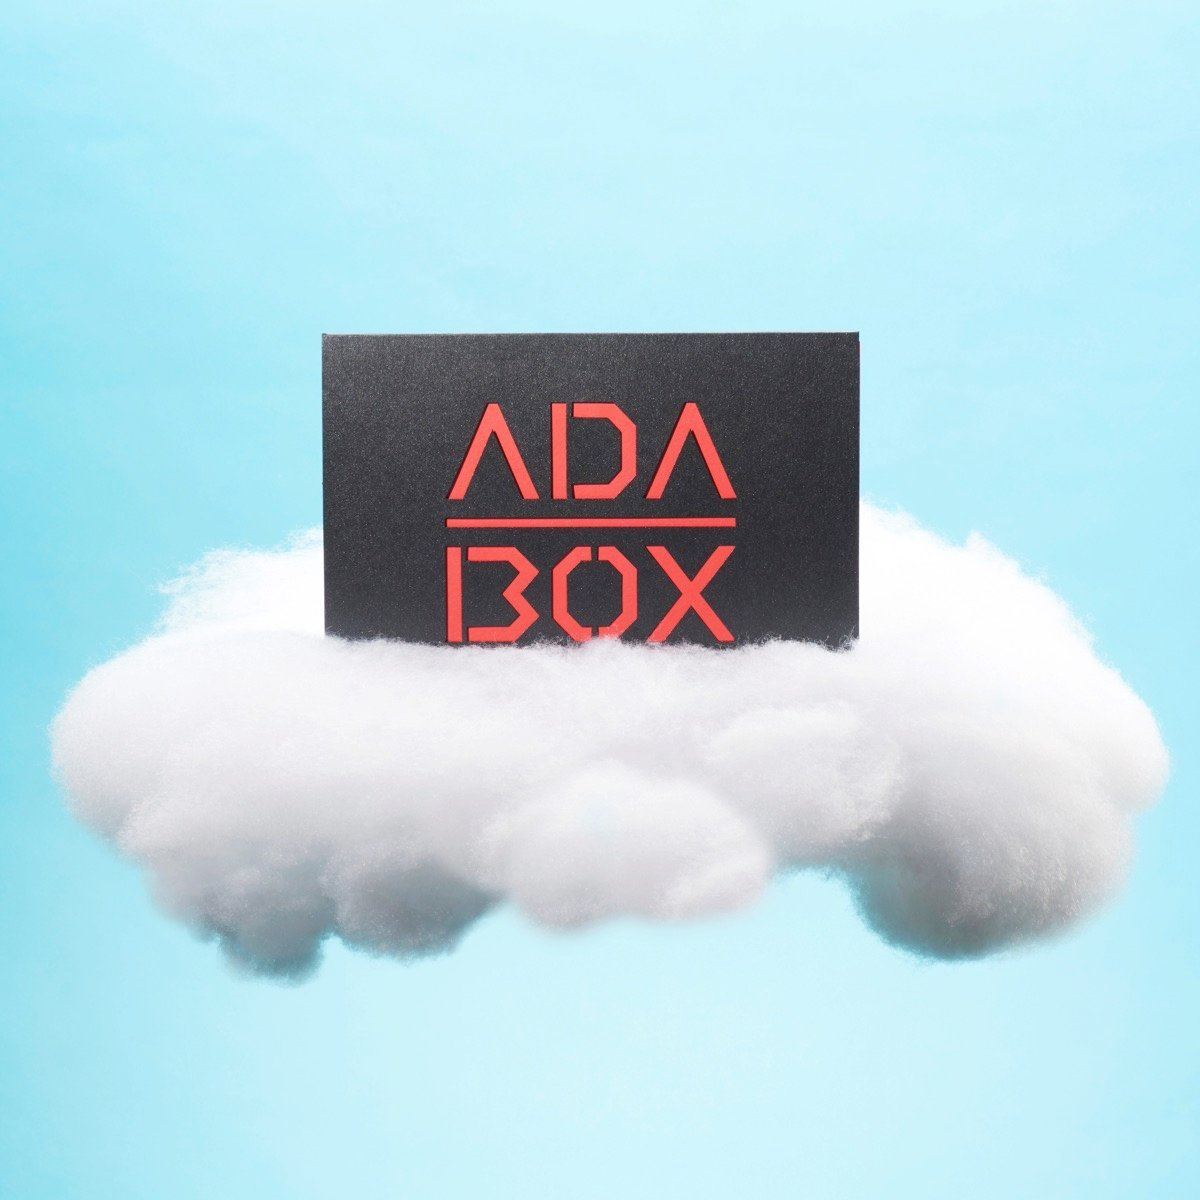 Adabox 03 Cloud Instagram 01 ORIG